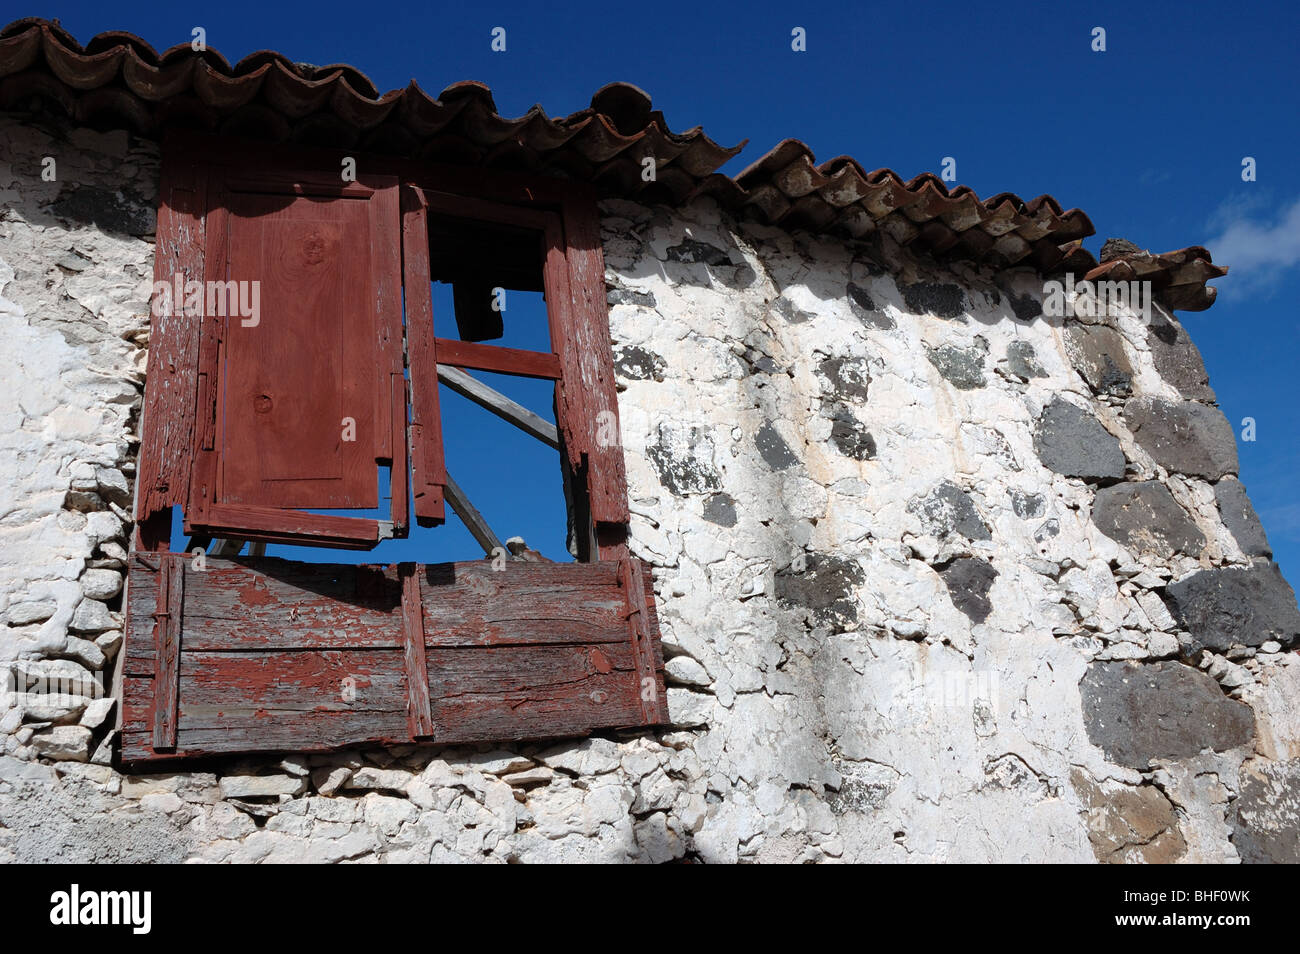 Decaying house in Taganana, Tenerife, Canary Islands, Spain Stock Photo